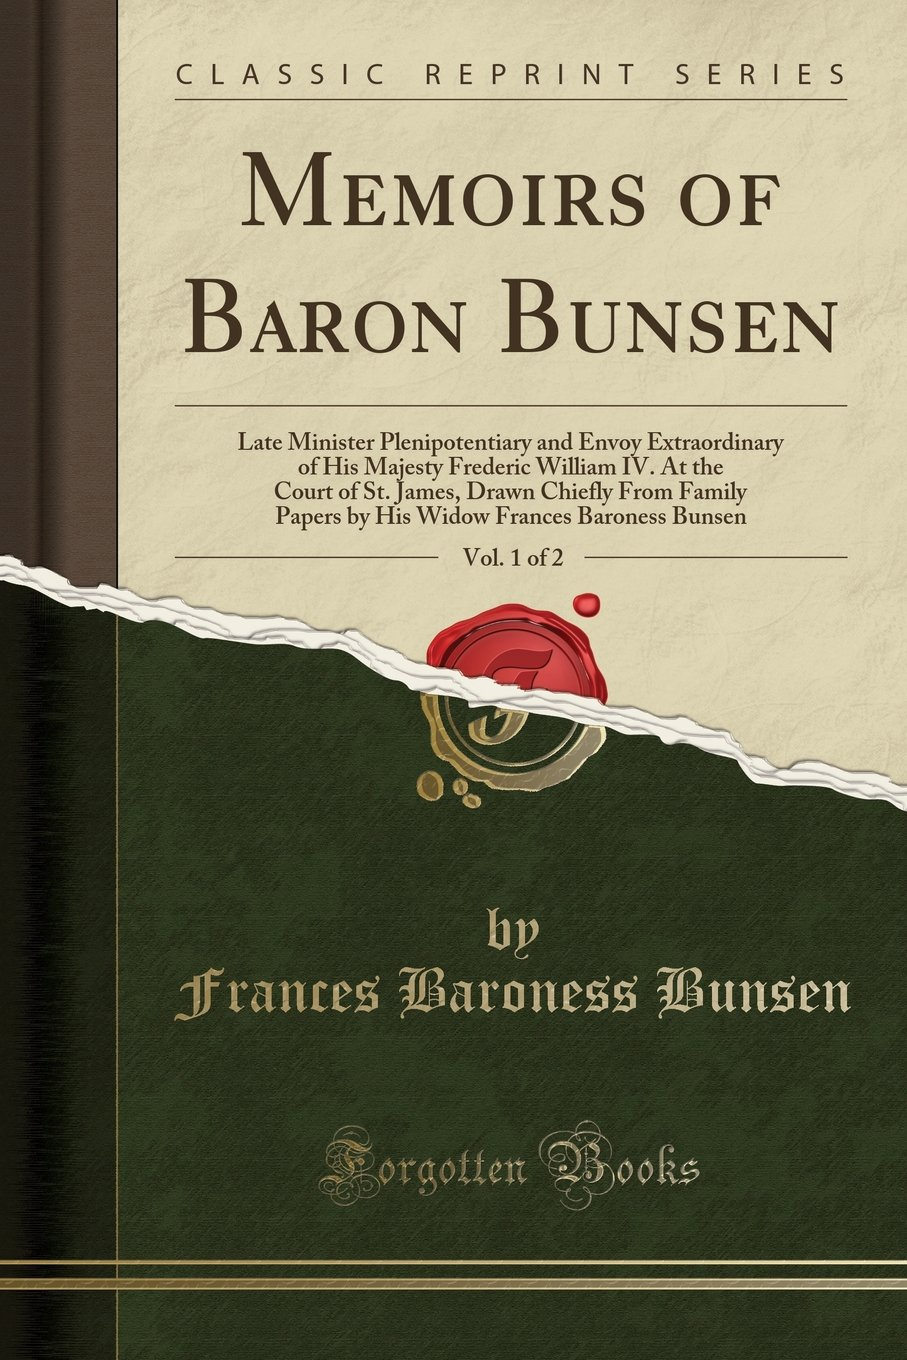 Read Online Memoirs of Baron Bunsen, Vol. 1 of 2: Late Minister Plenipotentiary and Envoy Extraordinary of His Majesty Frederic William IV. At the Court of St. ... Frances Baroness Bunsen (Classic Reprint) pdf epub